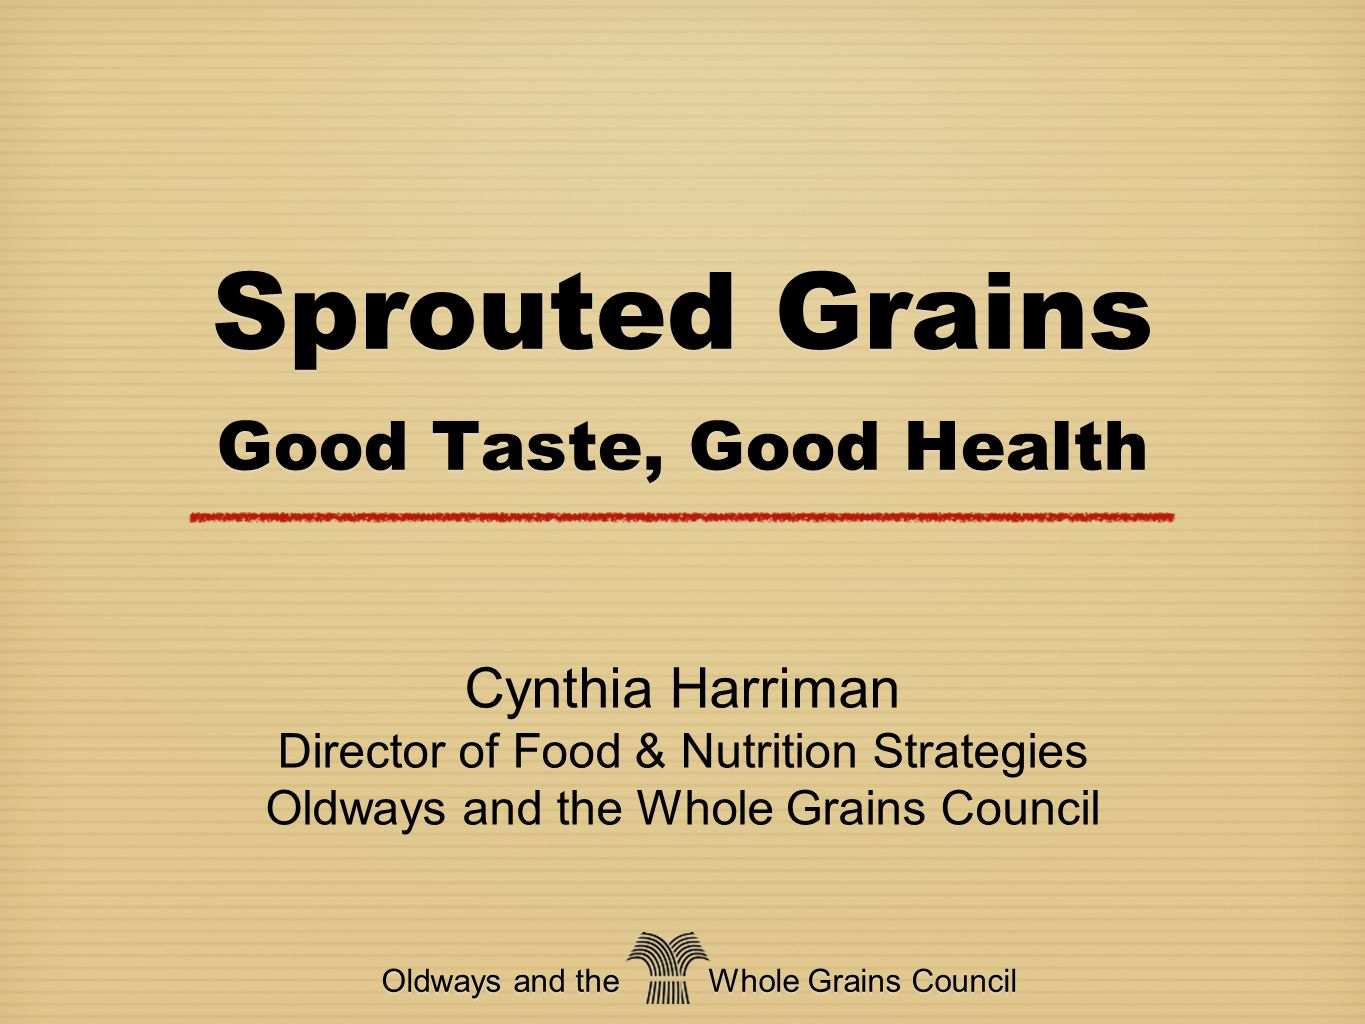 Oldways and the Whole Grains Council www.WholeGrainsCouncil.org and www.oldwayspt.org